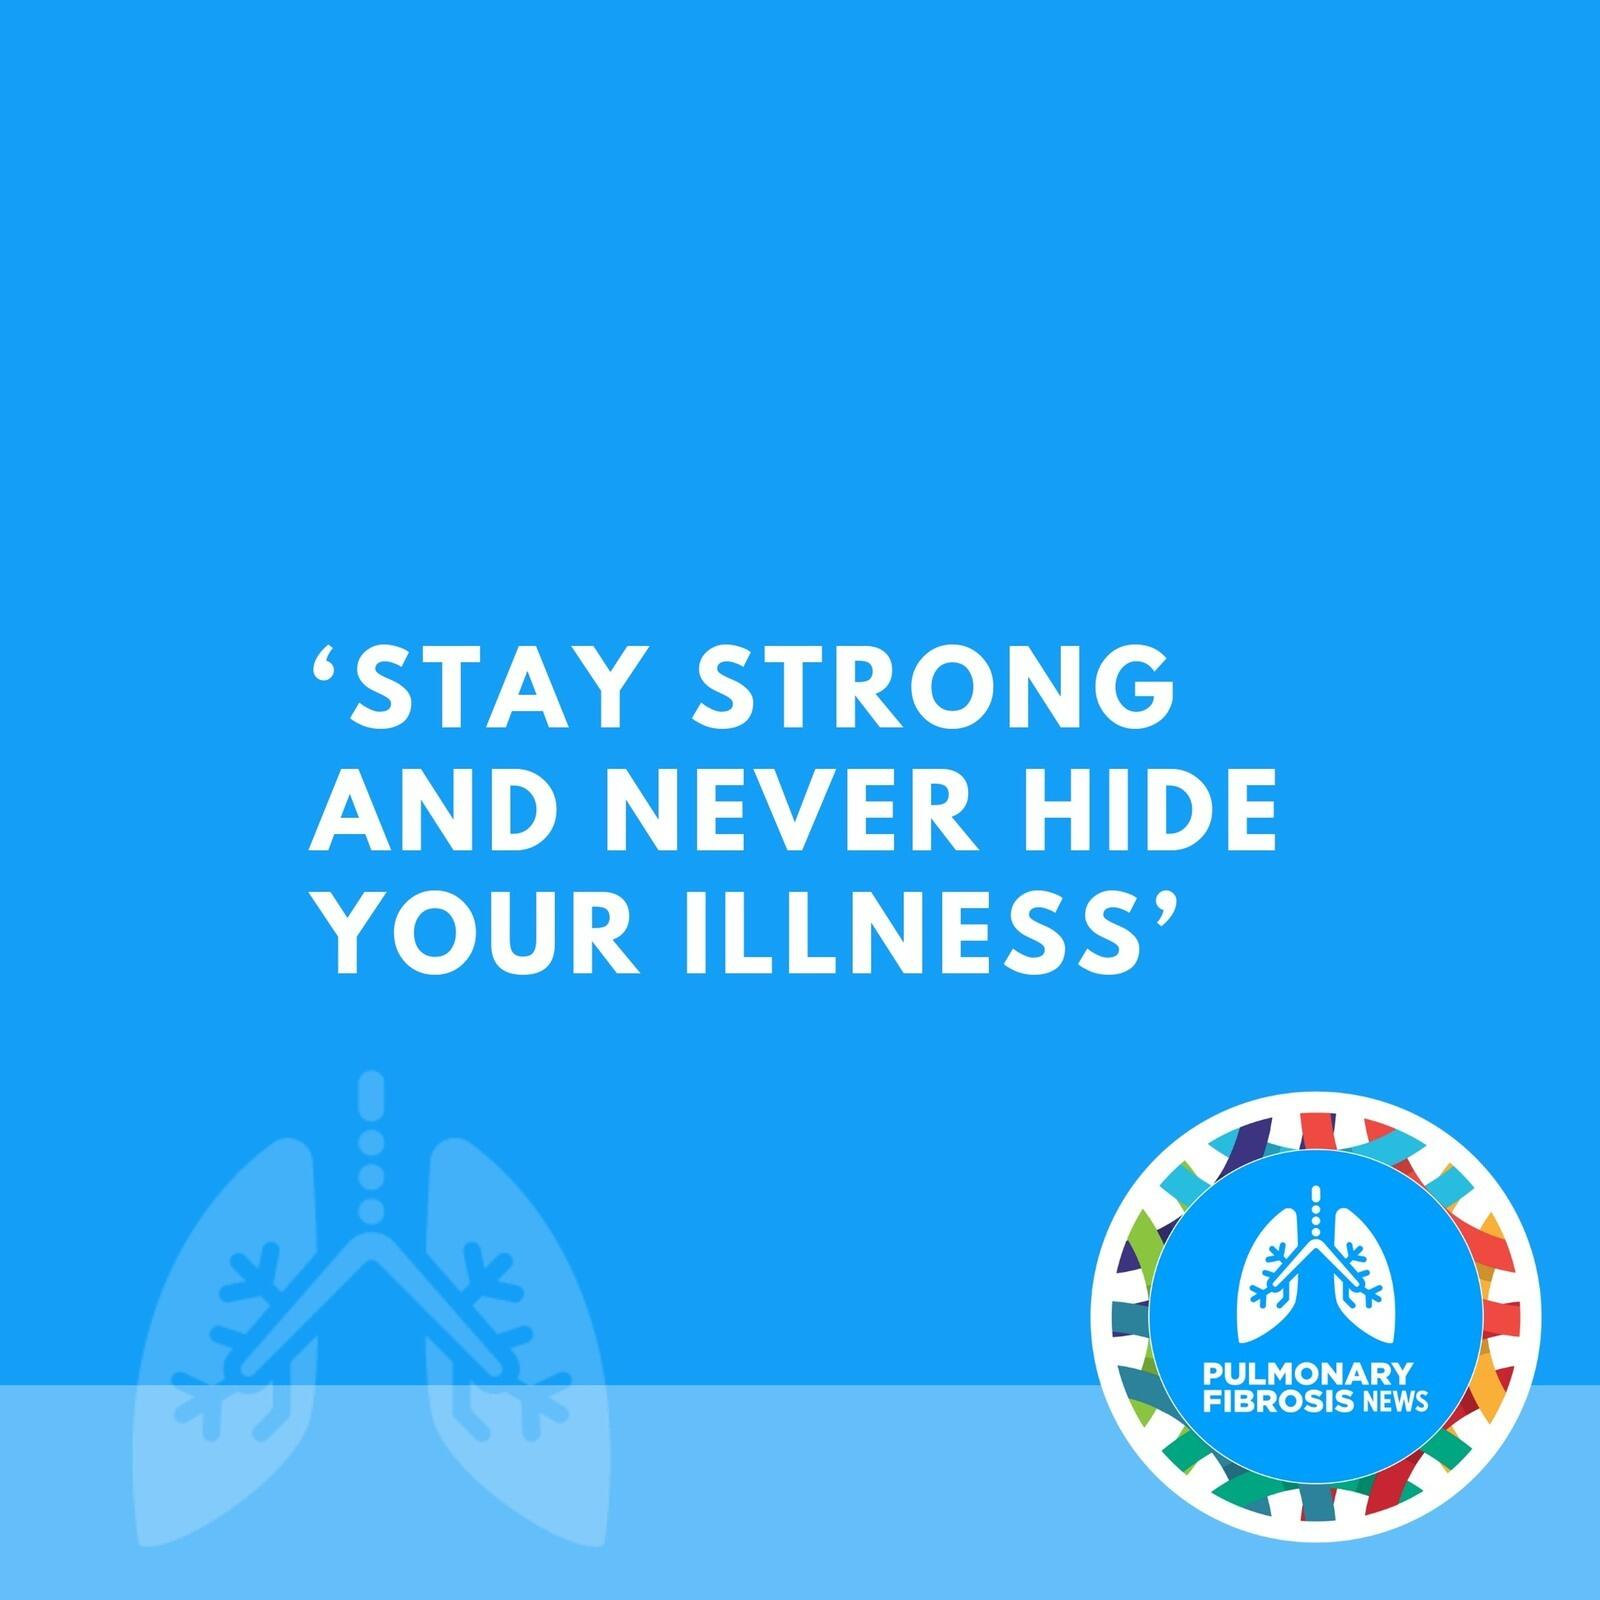 'Stay Strong and Never Hide Your Illness'